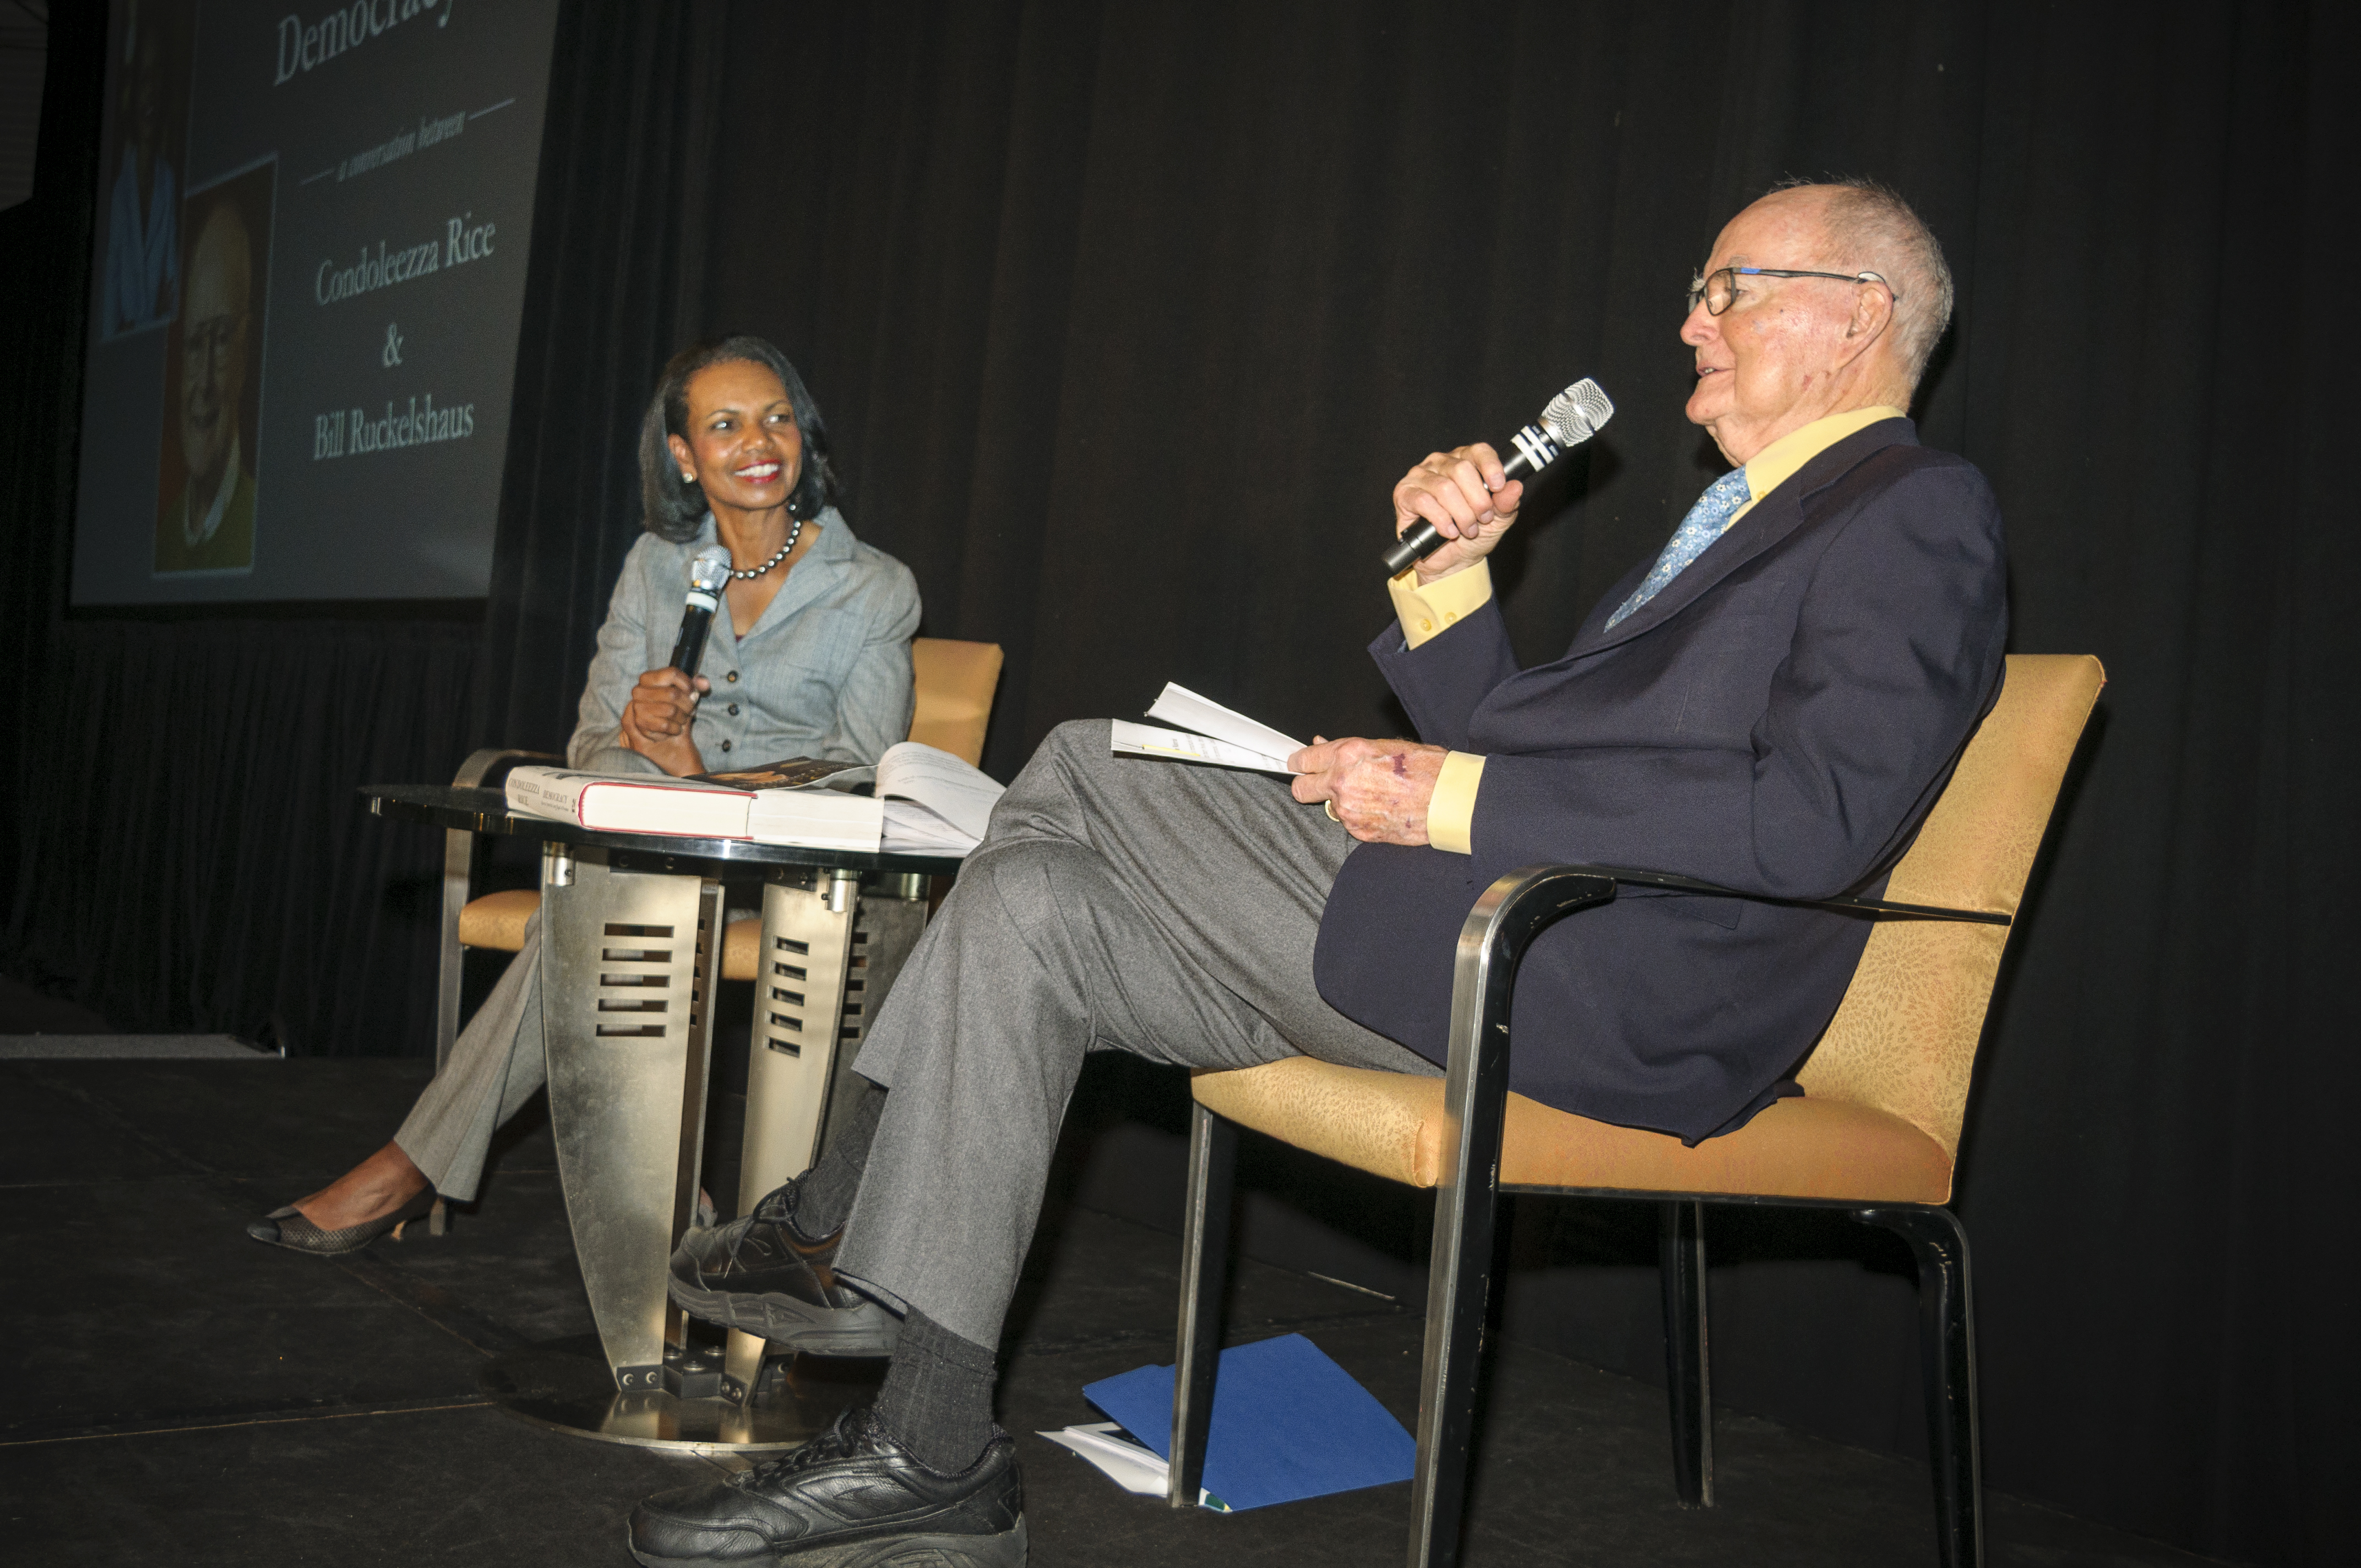 Bil Ruckelshaus and Condoleeza Rice